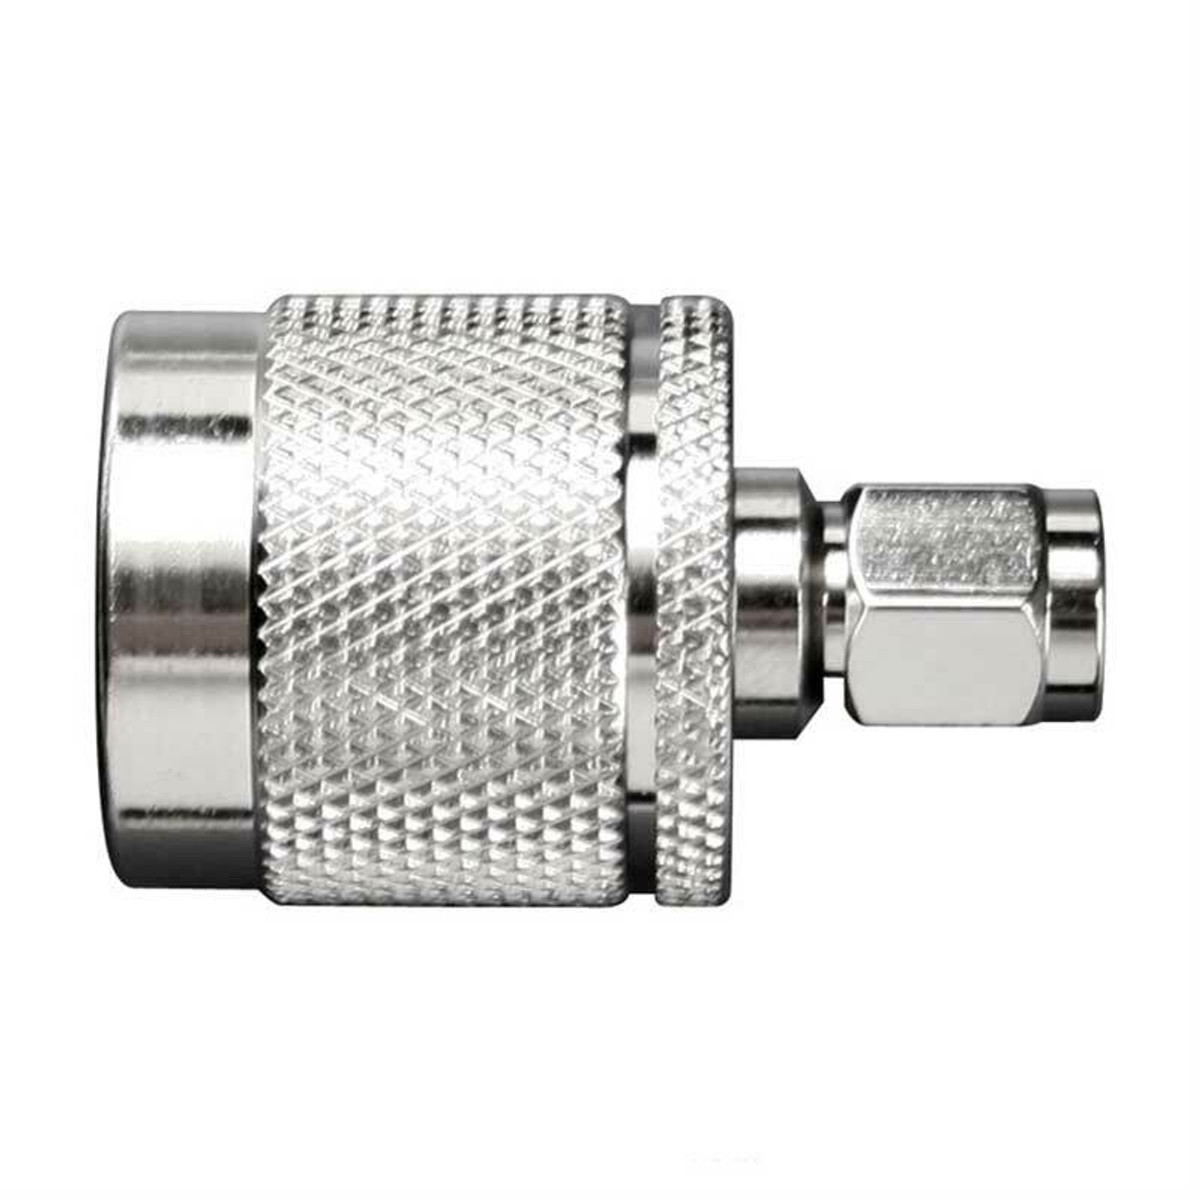 weBoost (Wilson) 971132 SMA-Male to N-Male Connector